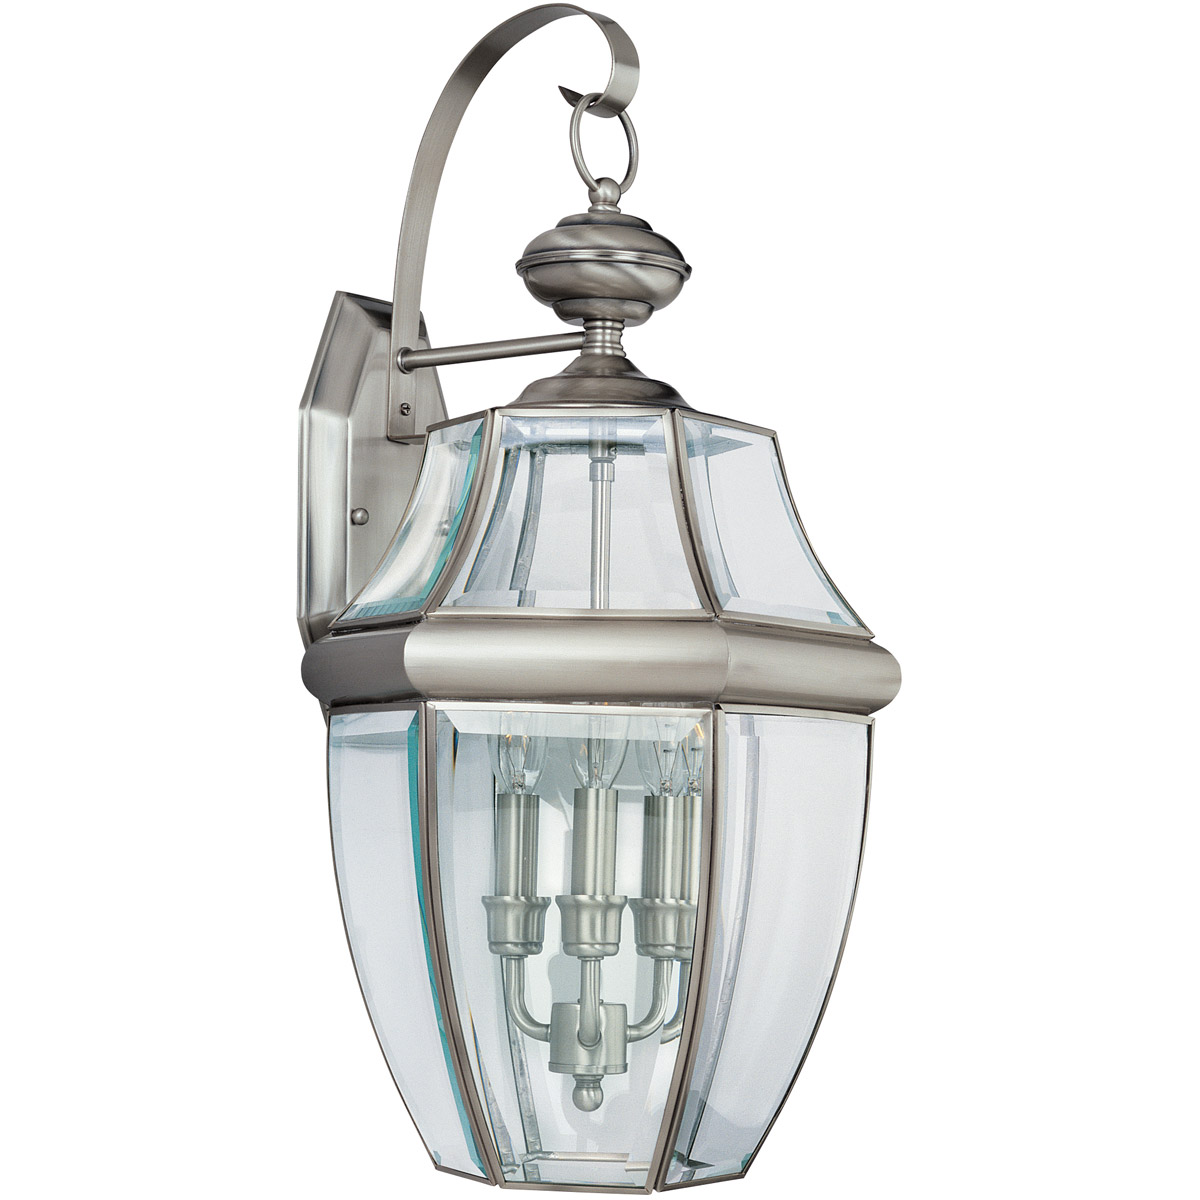 Sea Gull Lighting Lancaster 3 Light Outdoor Wall Lantern in Antique Brushed Nickel 8040-965 photo